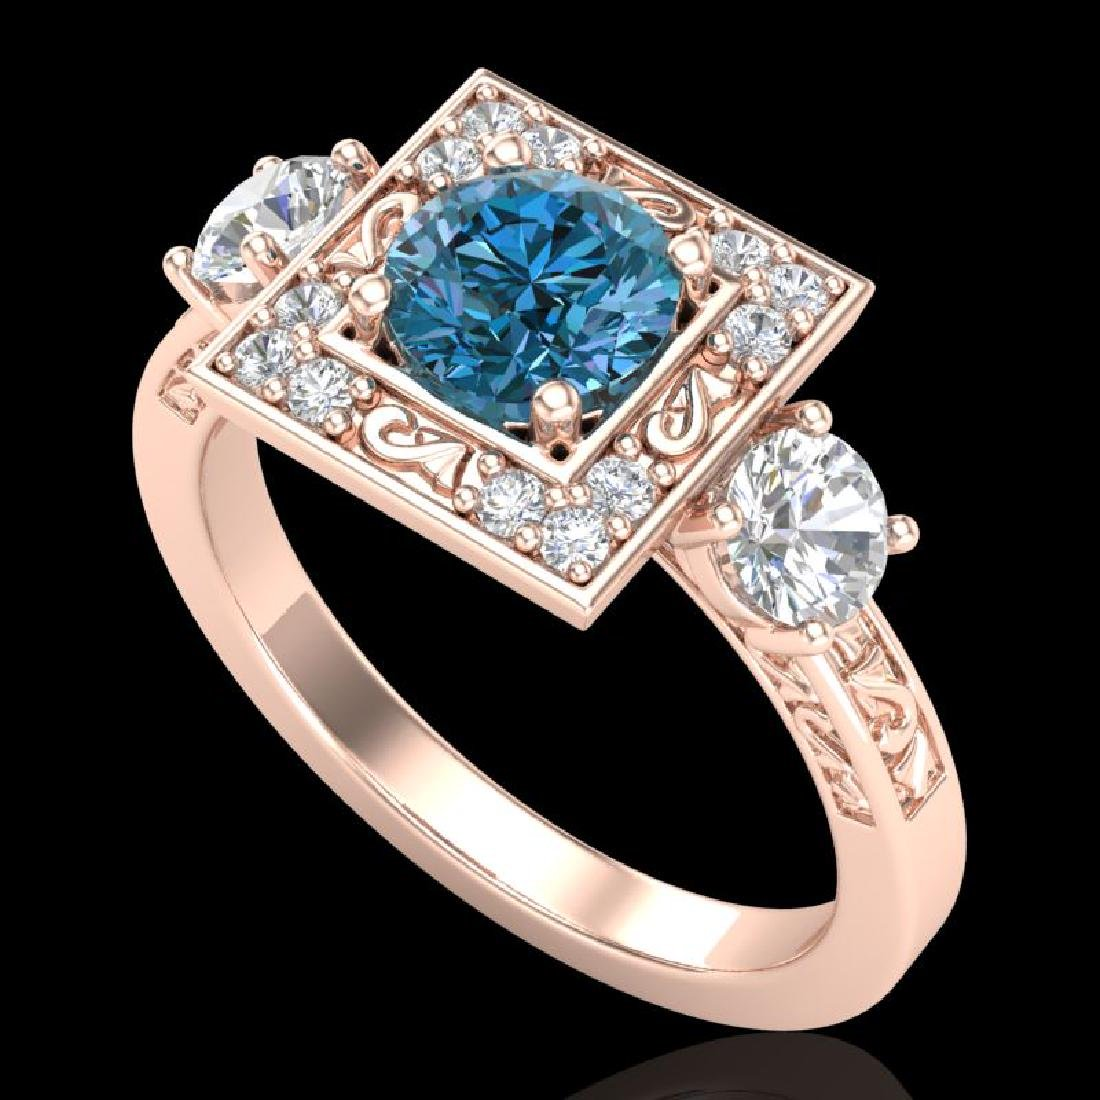 1.55 CTW Intense Blue Diamond Solitaire Art Deco 3